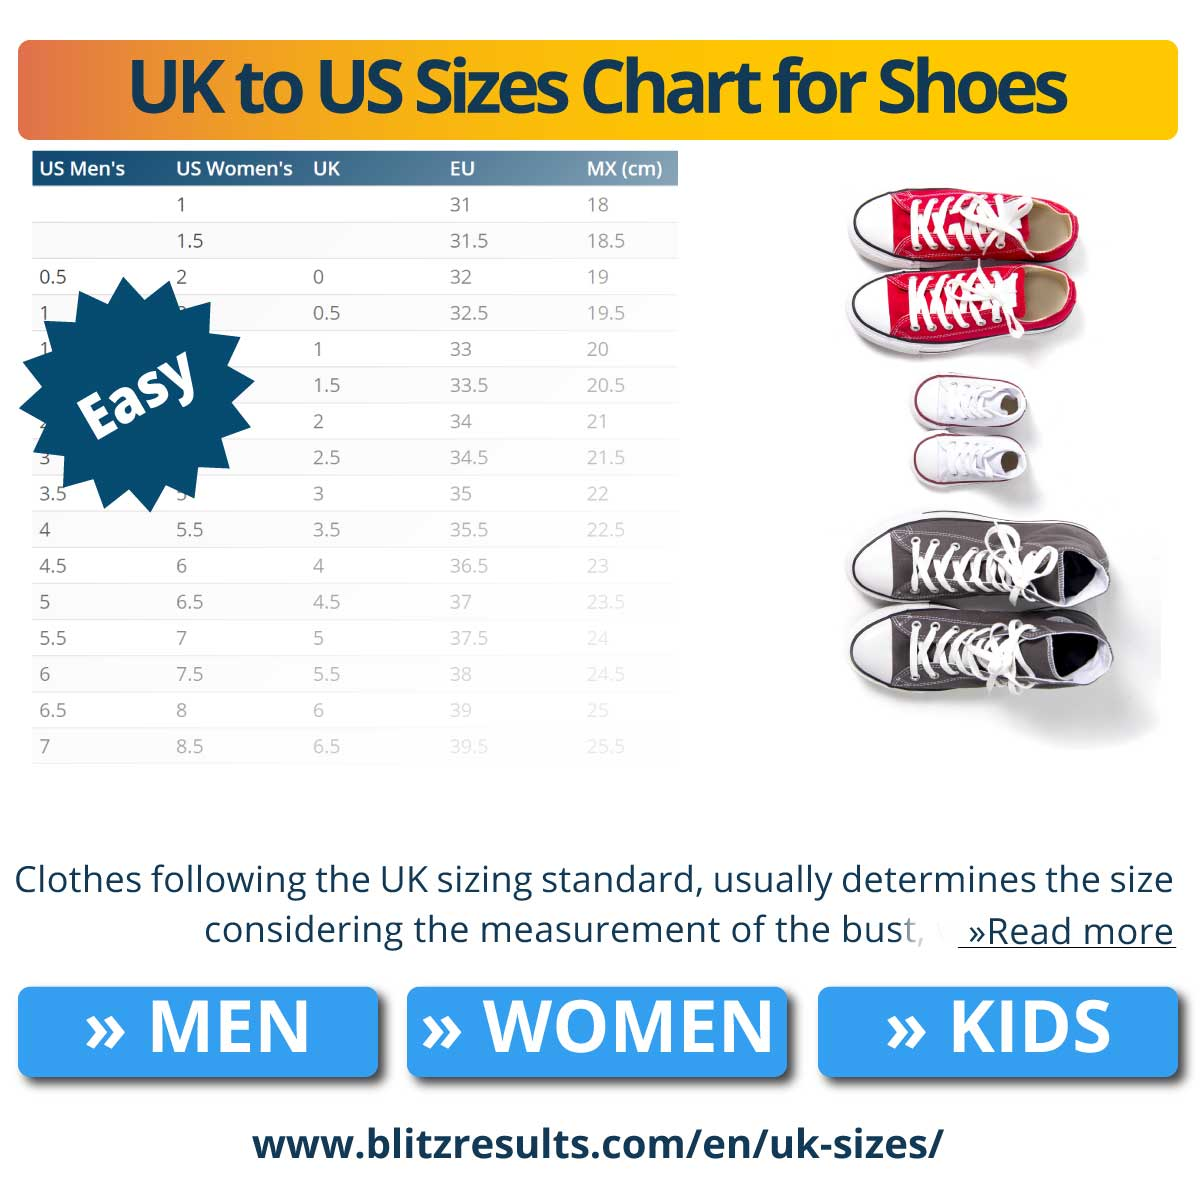 UK to US Sizes Chart for Shoes